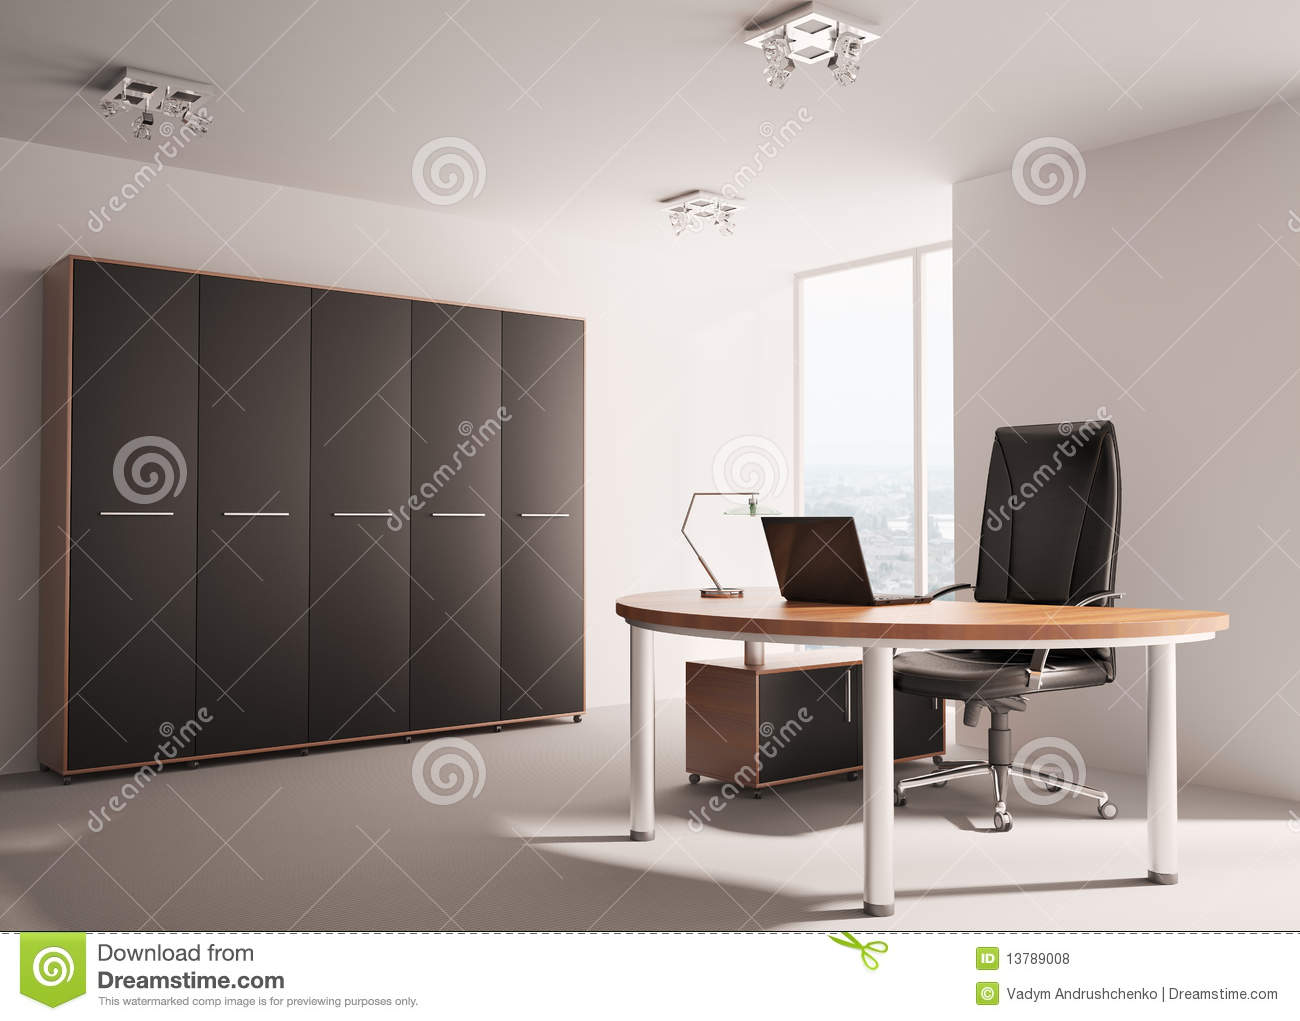 moderne bureau binnenlandse 3d stock illustratie afbeelding 13789008. Black Bedroom Furniture Sets. Home Design Ideas